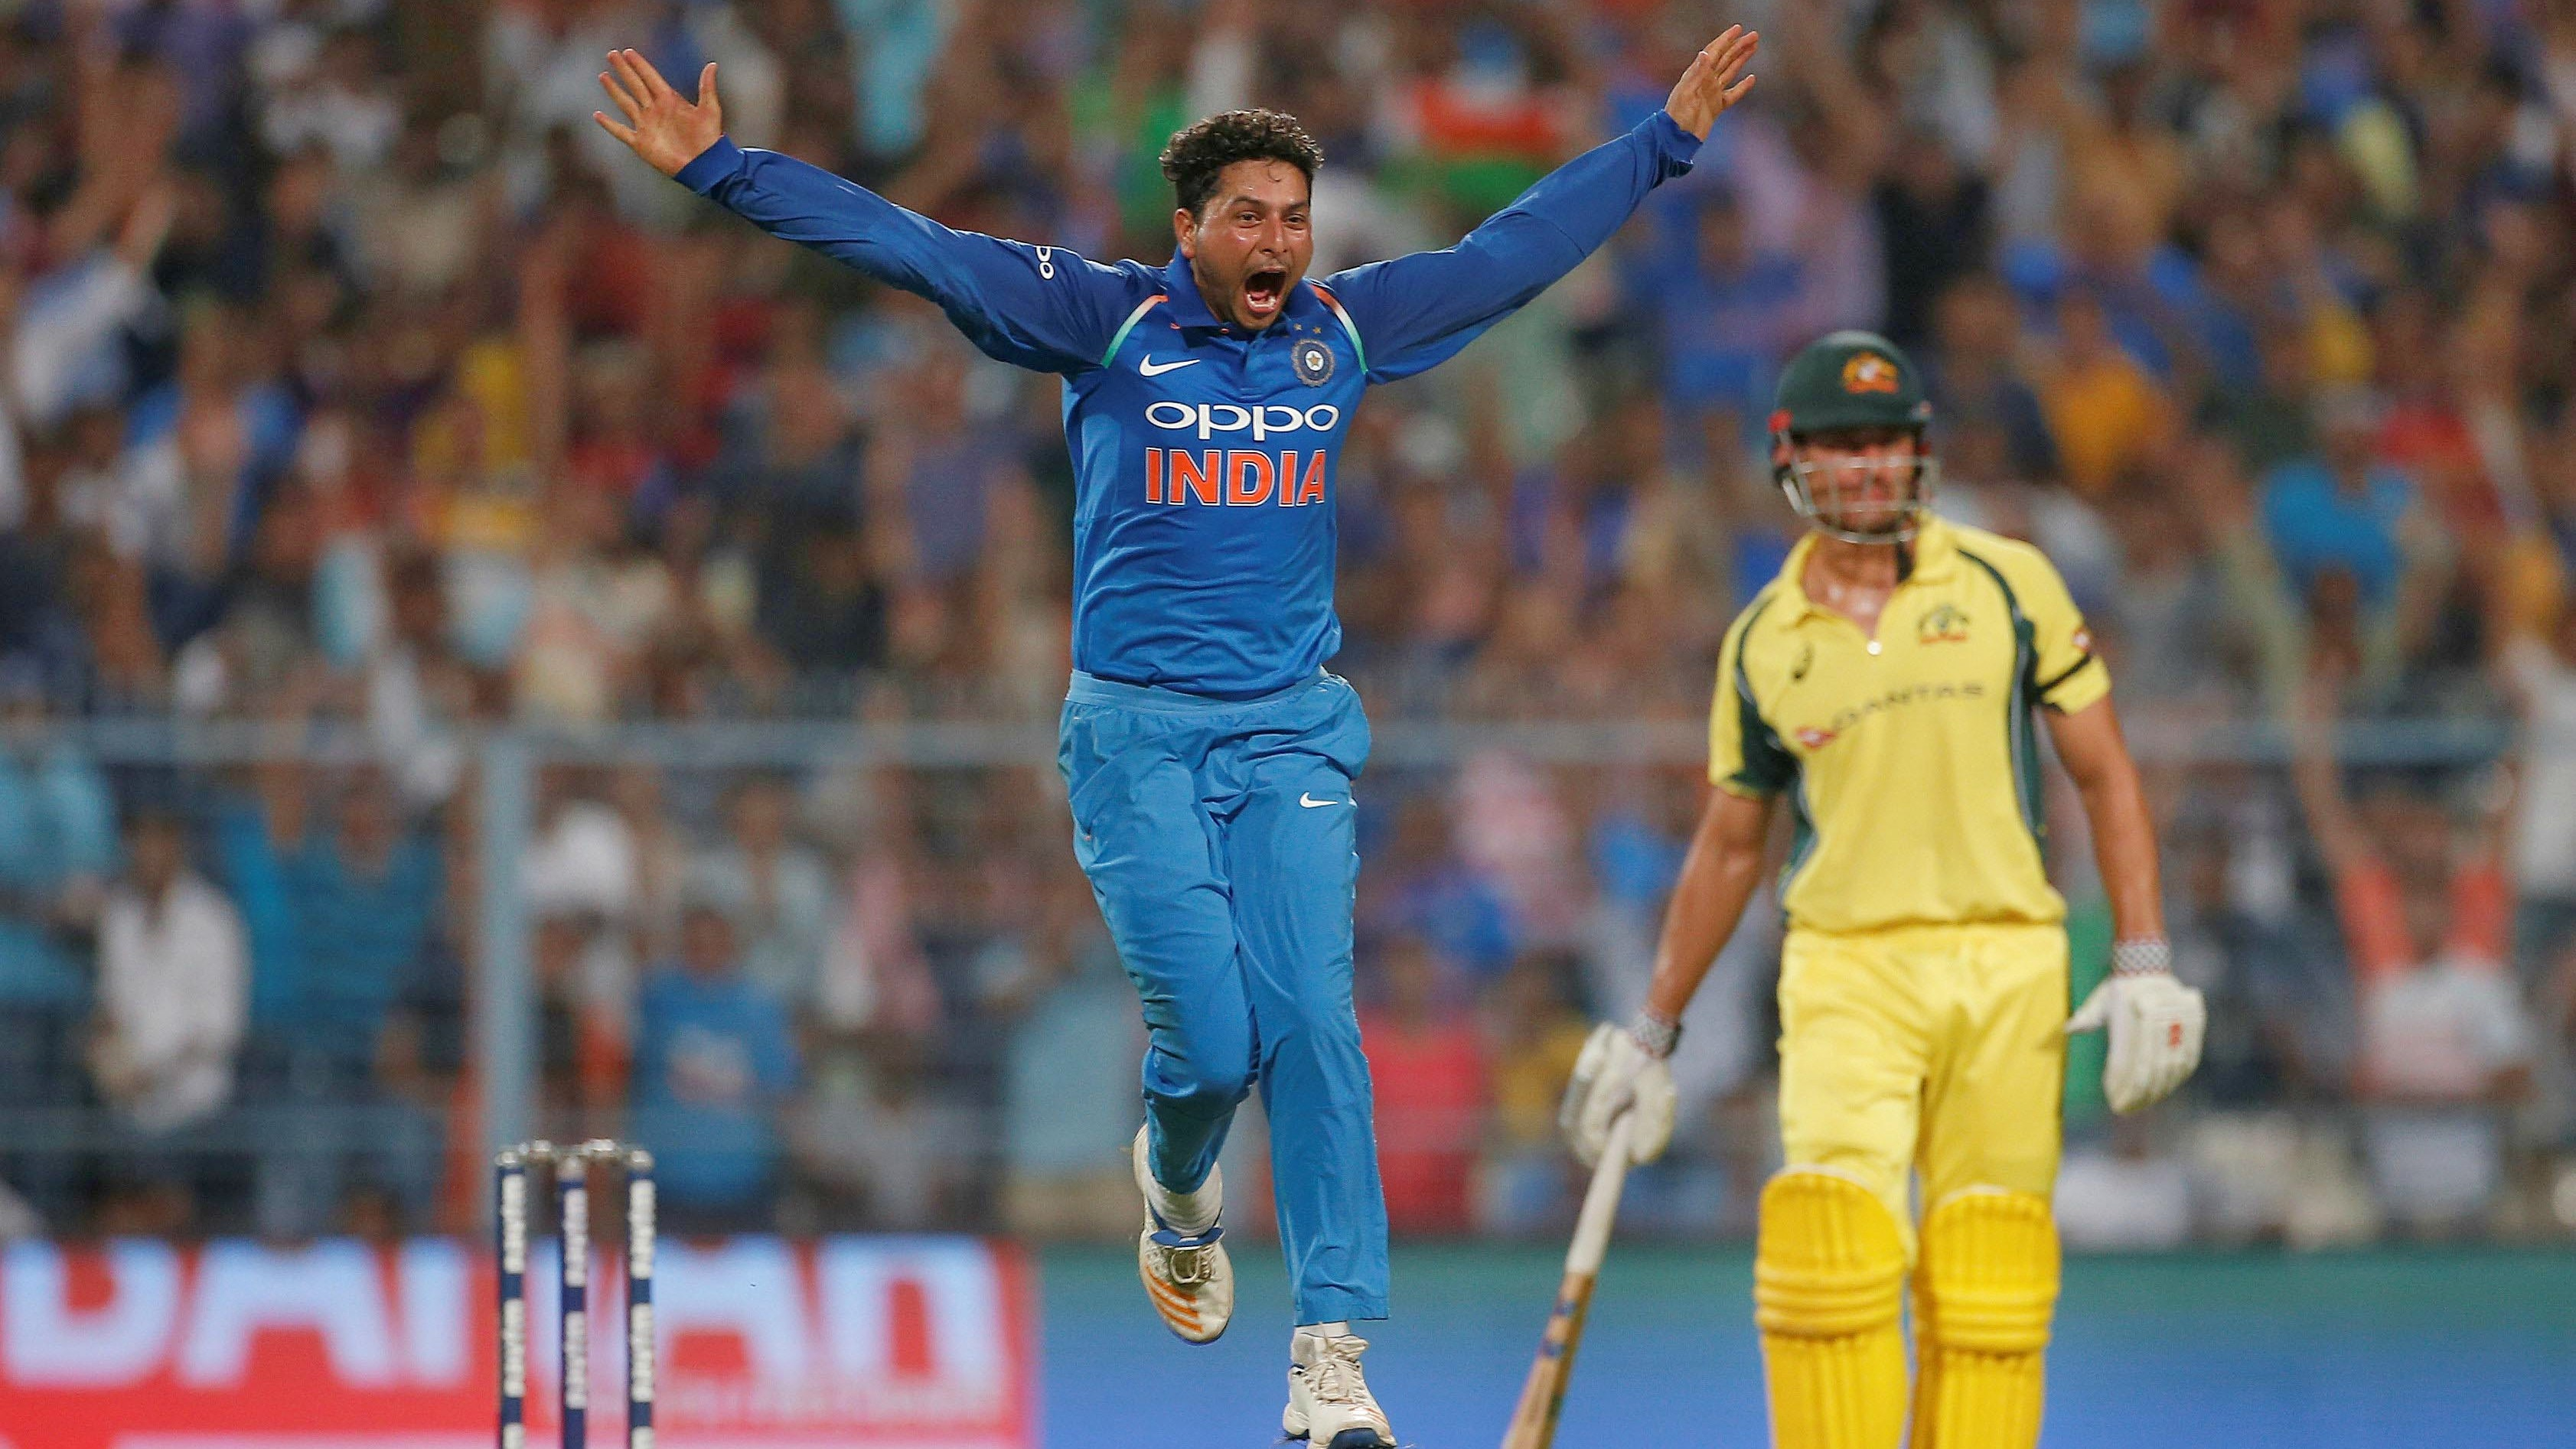 Hat trick cricket kuldeep yadav